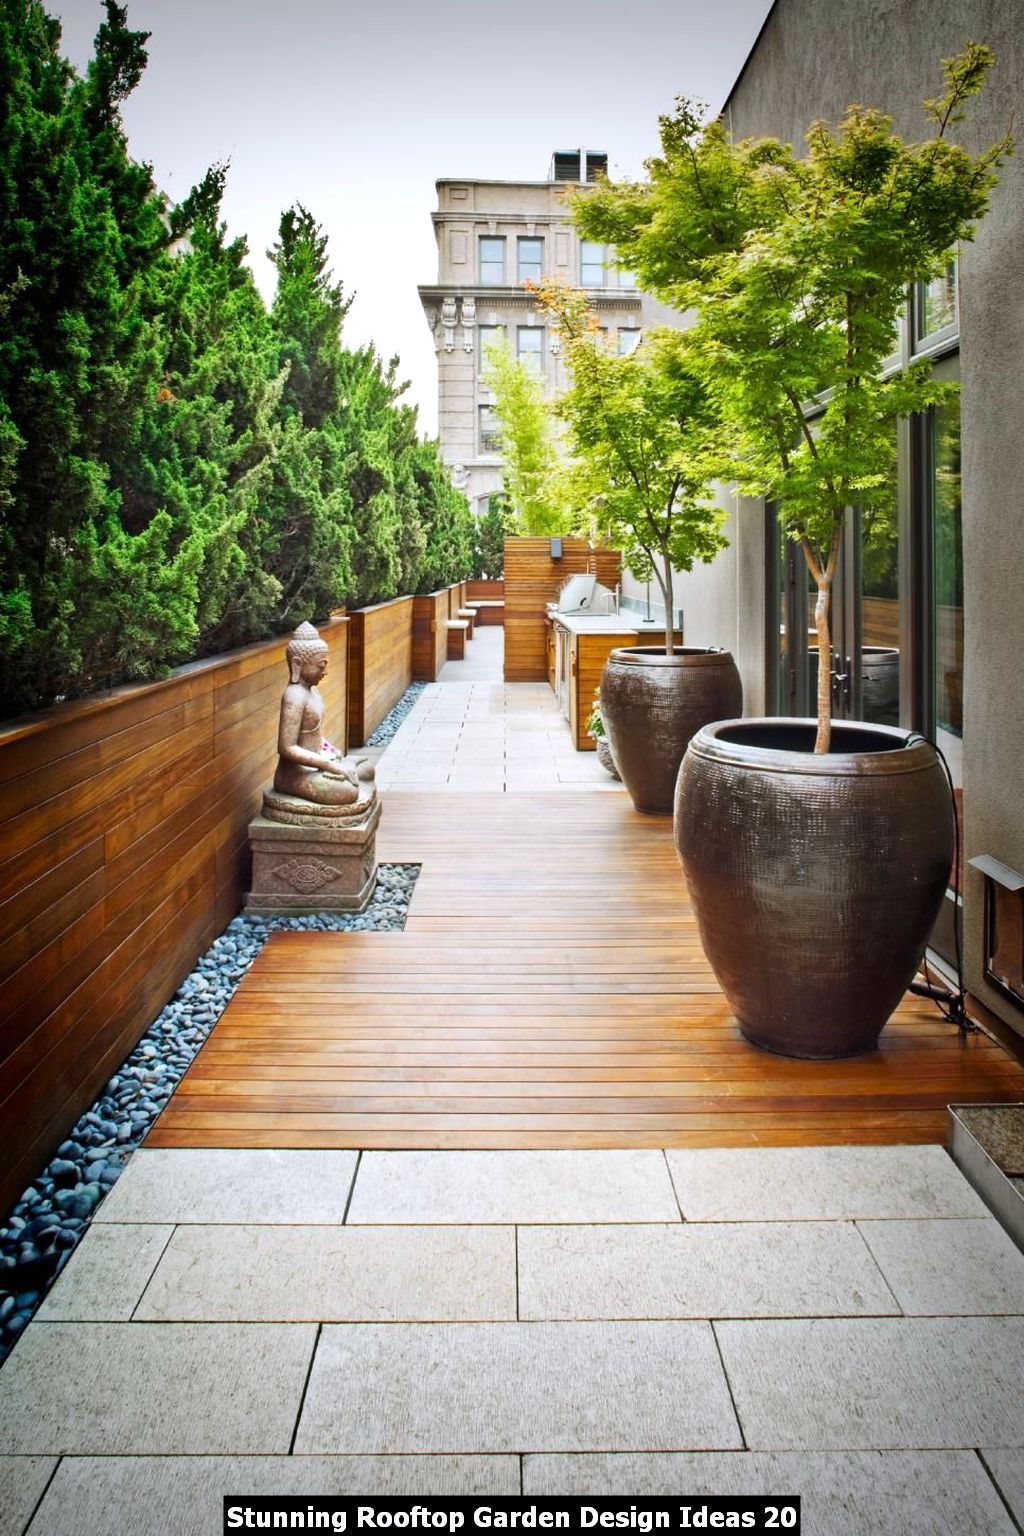 Stunning Rooftop Garden Design Ideas 20